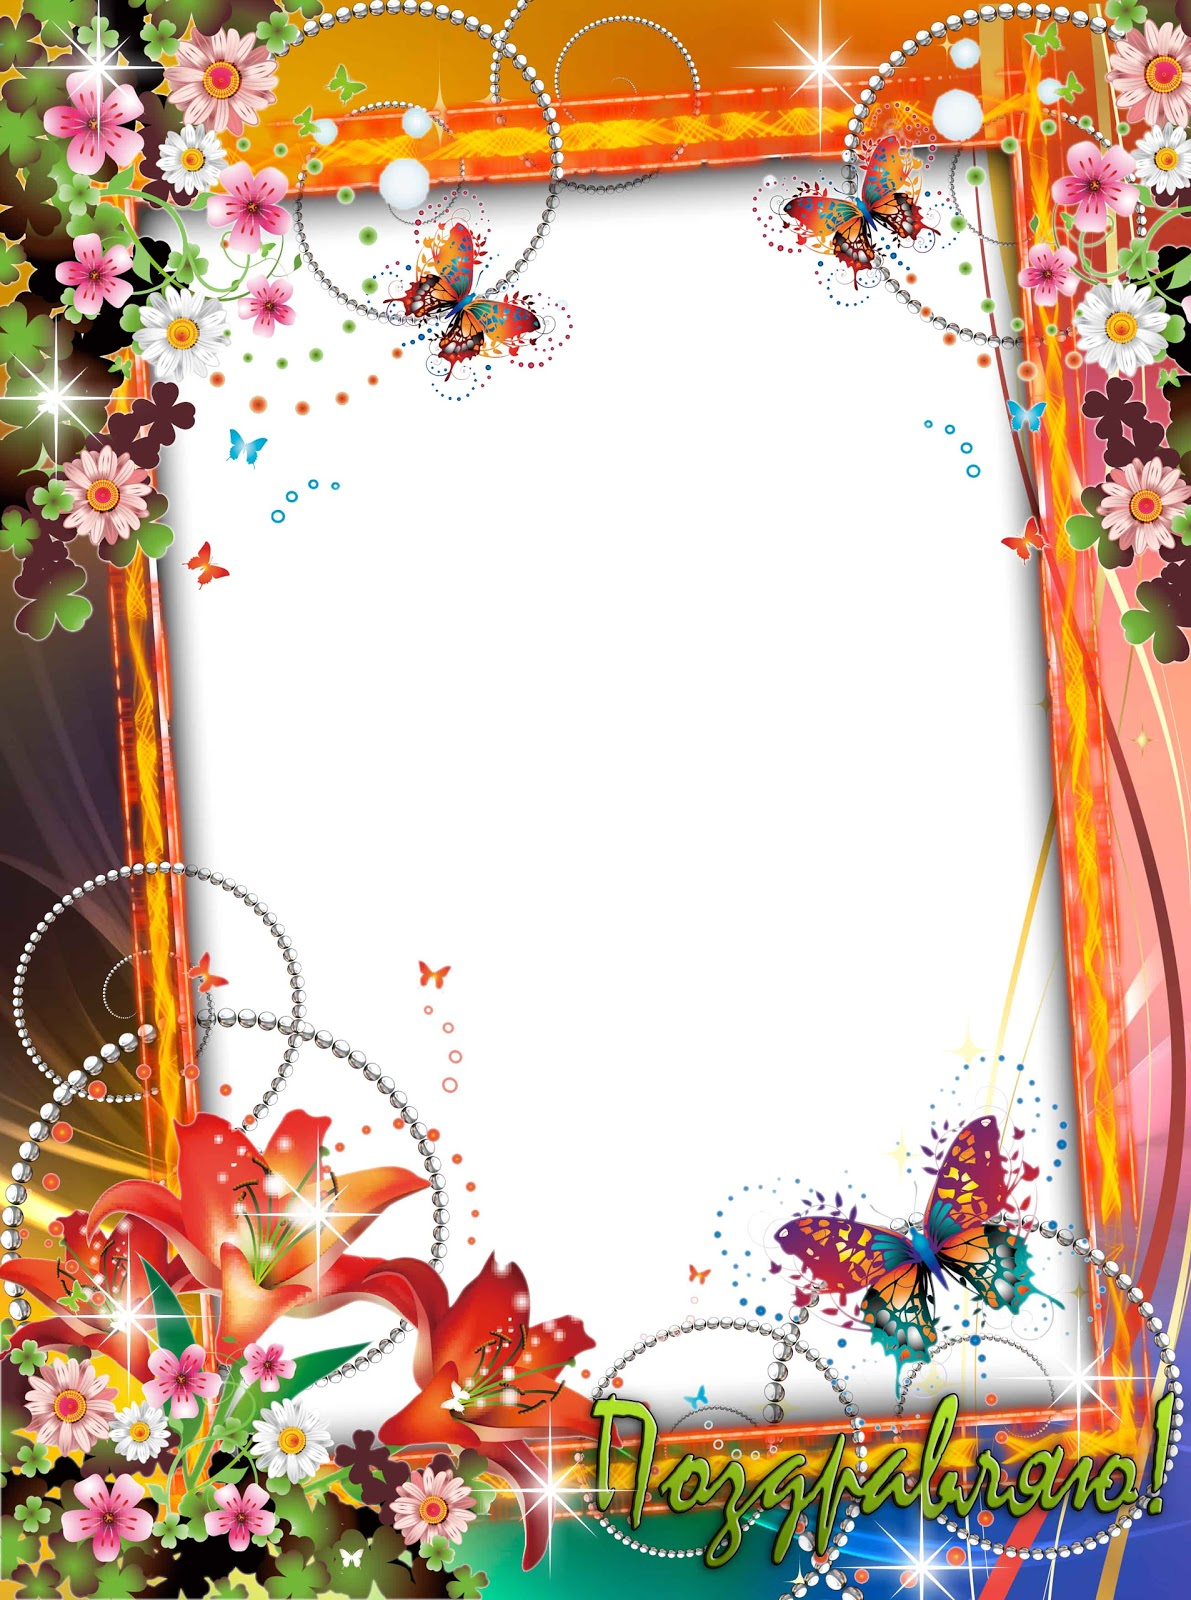 Flower Photo Frame Software Free Download - vehiclekindl